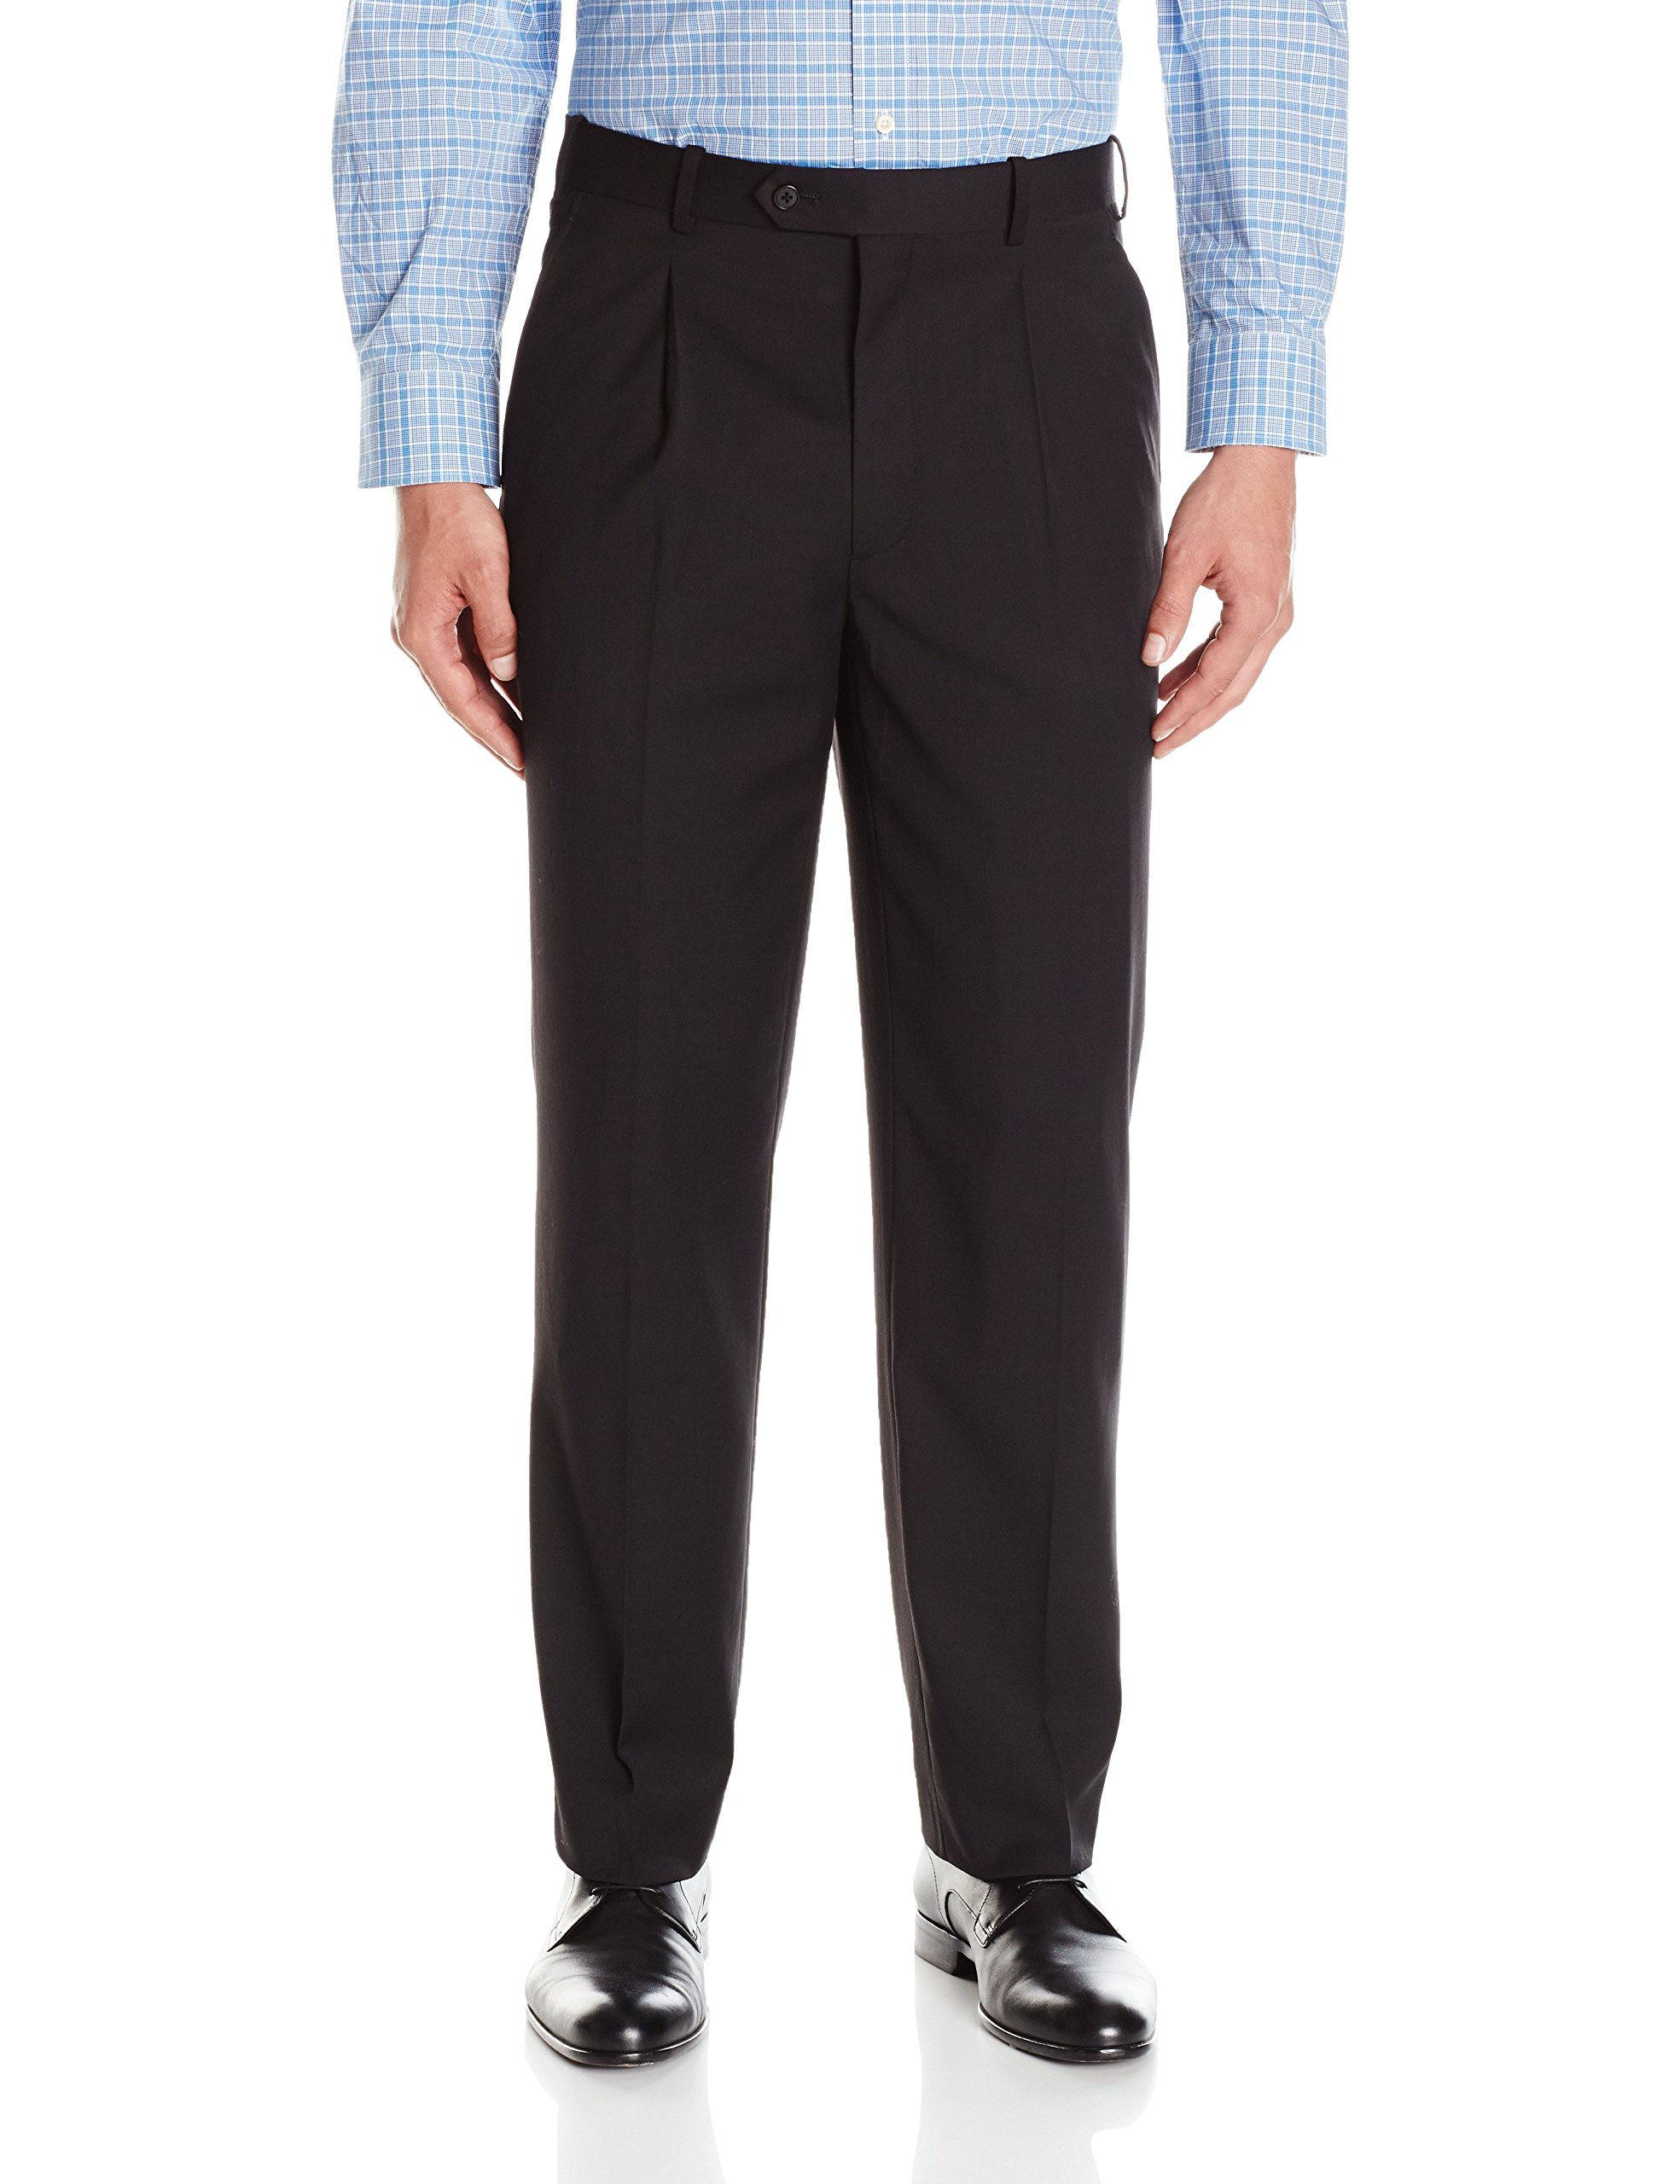 Adolfo Men's Black Single Pleat Micro Tech Suit Pant, Solid, 38W x 30L by Adolfo